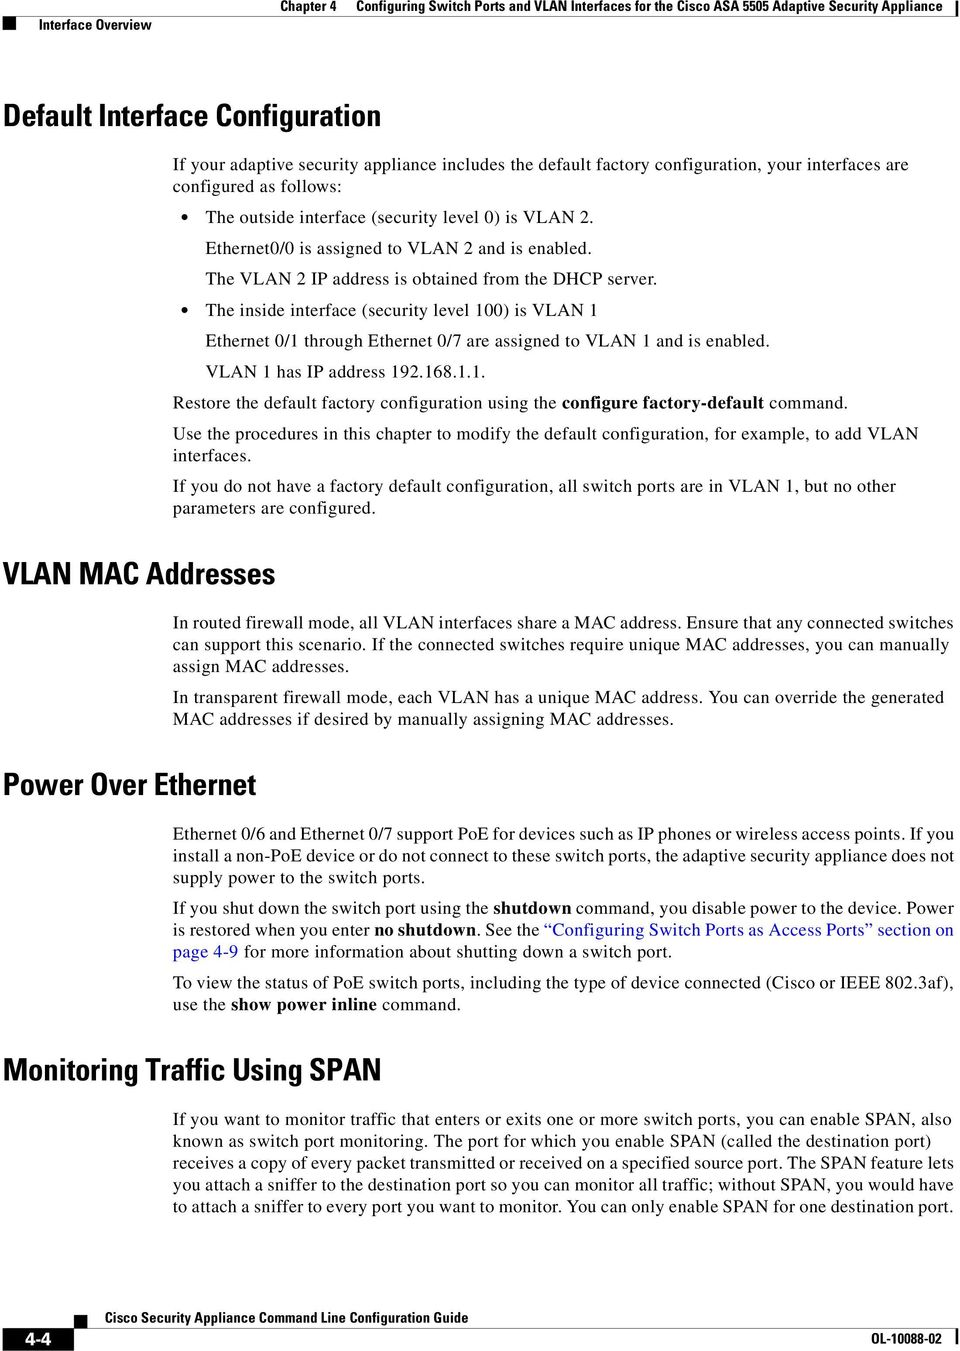 Configuring Switch Ports and VLAN Interfaces for the Cisco